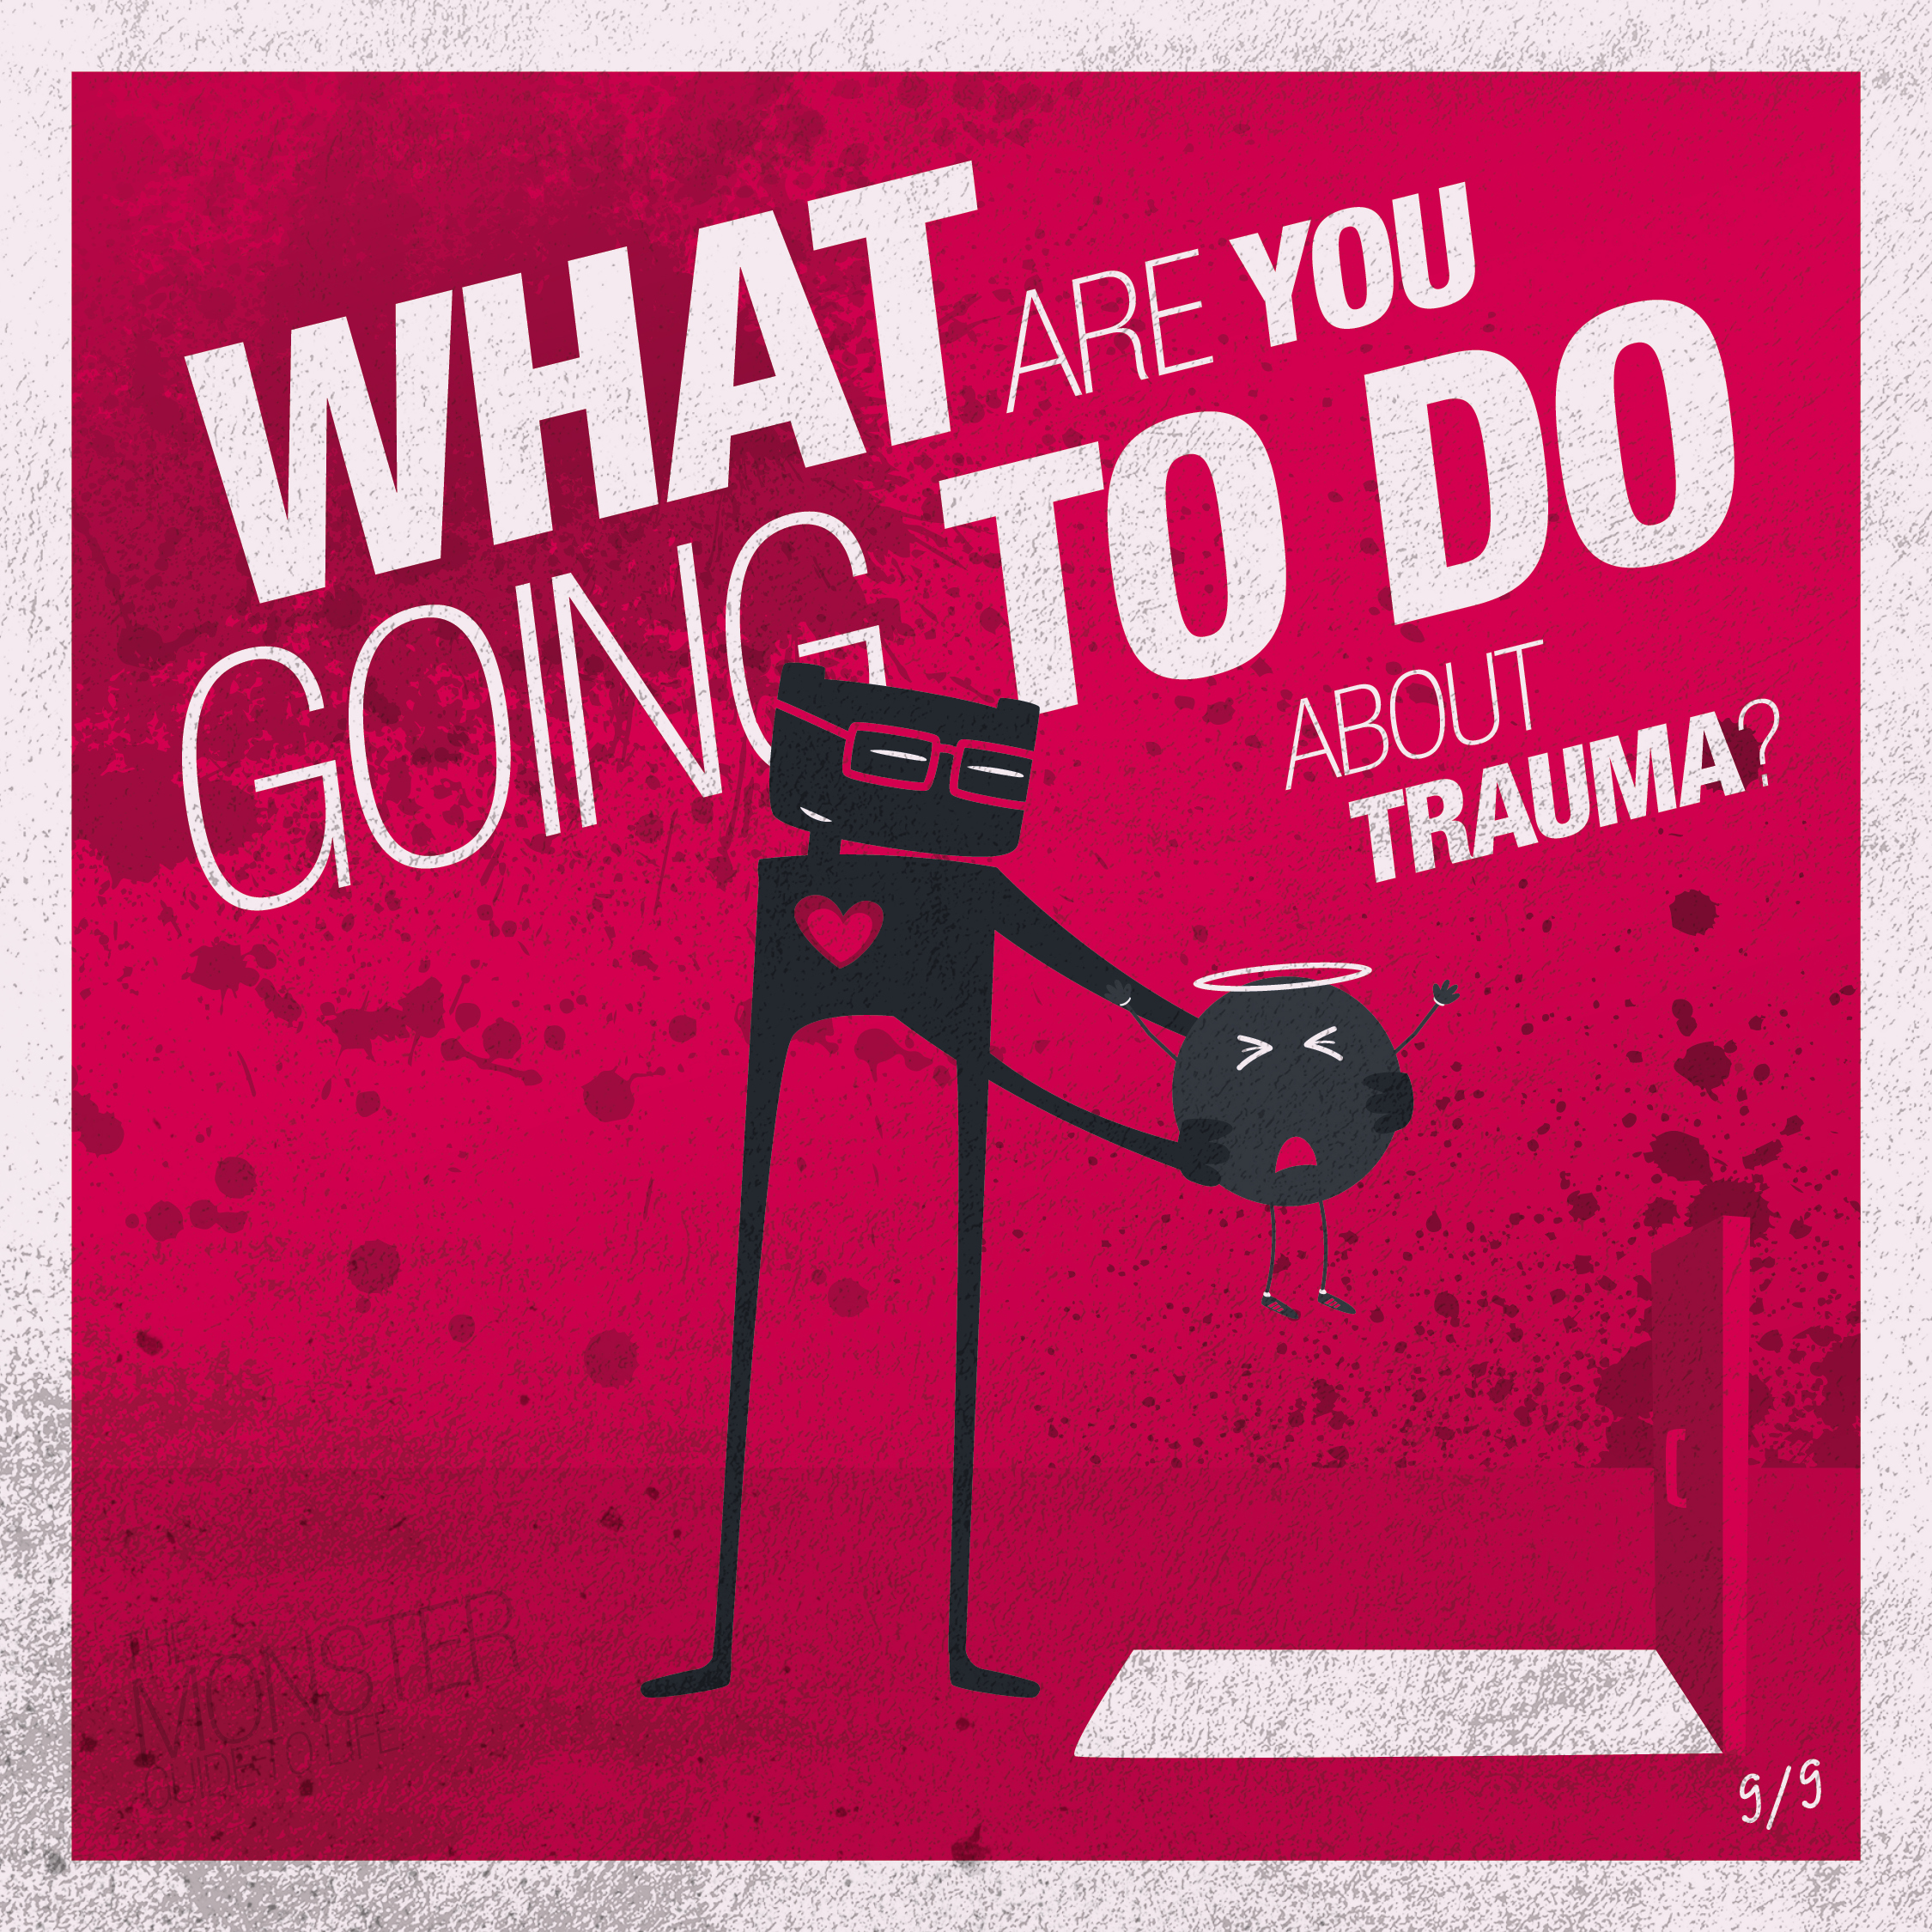 What are you going to do about trauma?